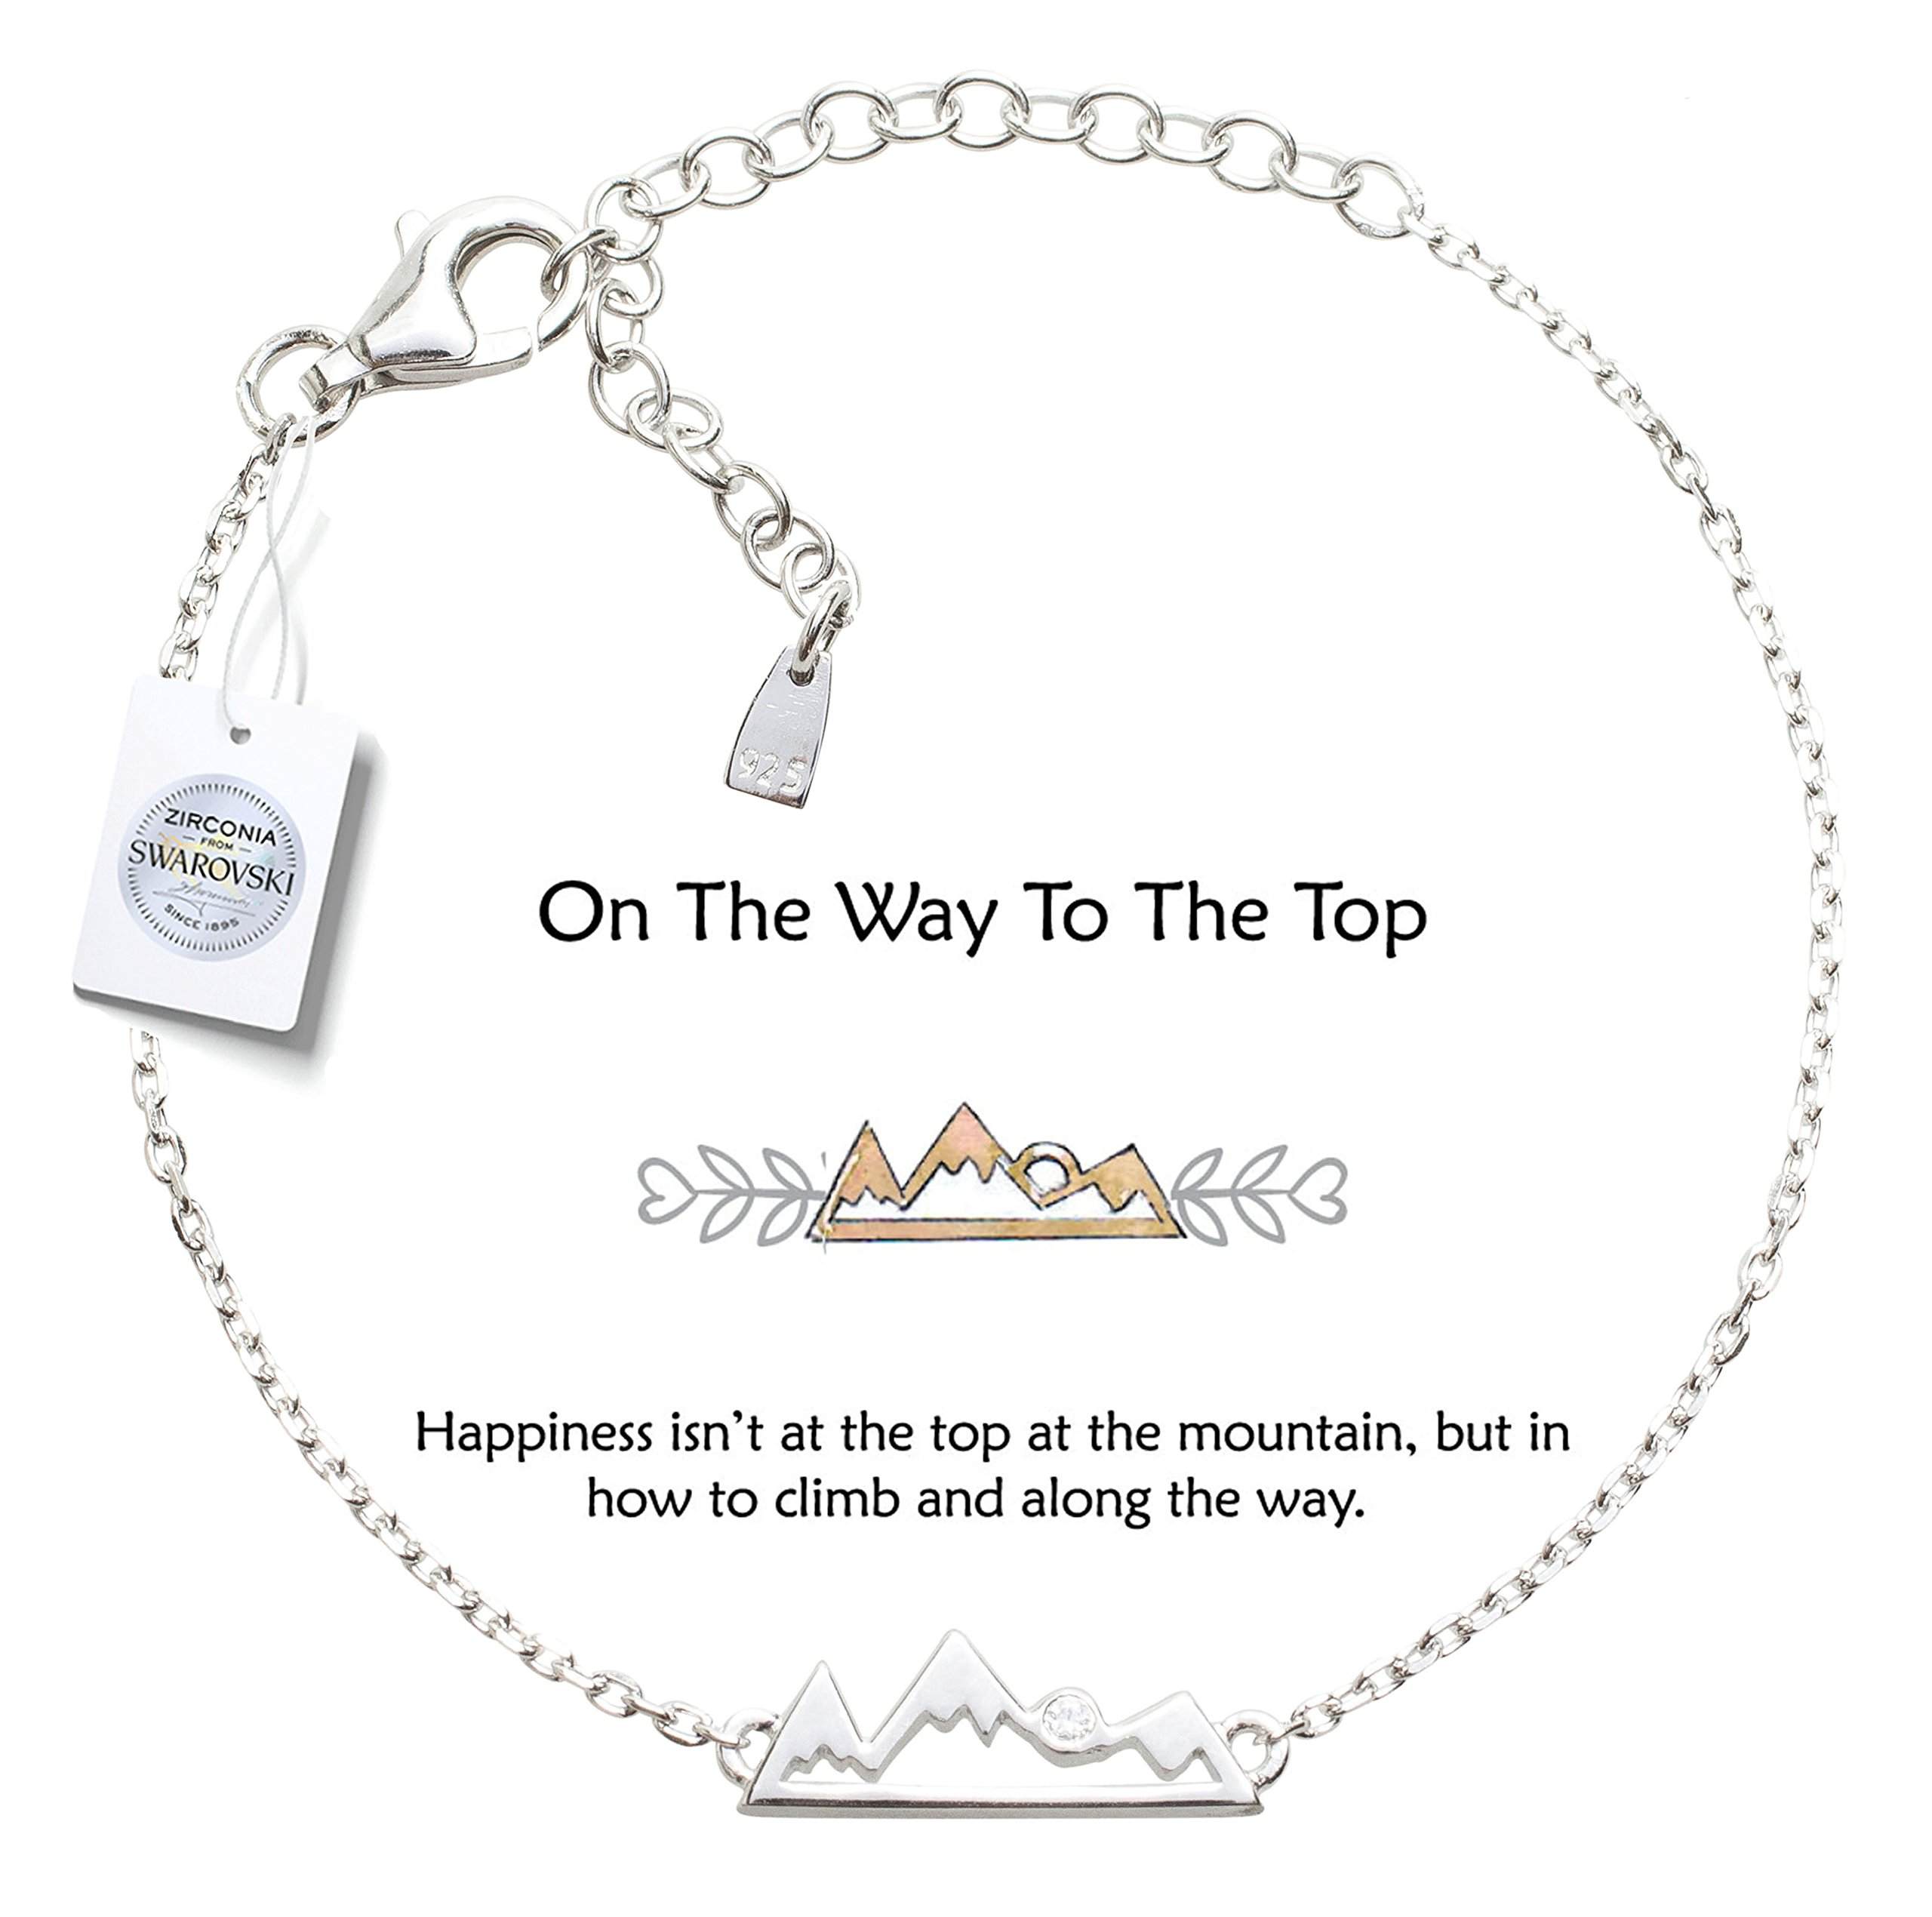 Vivid&Keith Bracelet 925 Sterling Silver Adjustable 18K Gold Plated with Swarovski Zirconia (Snowy Mountain, White-Gold-Plated-Silver)